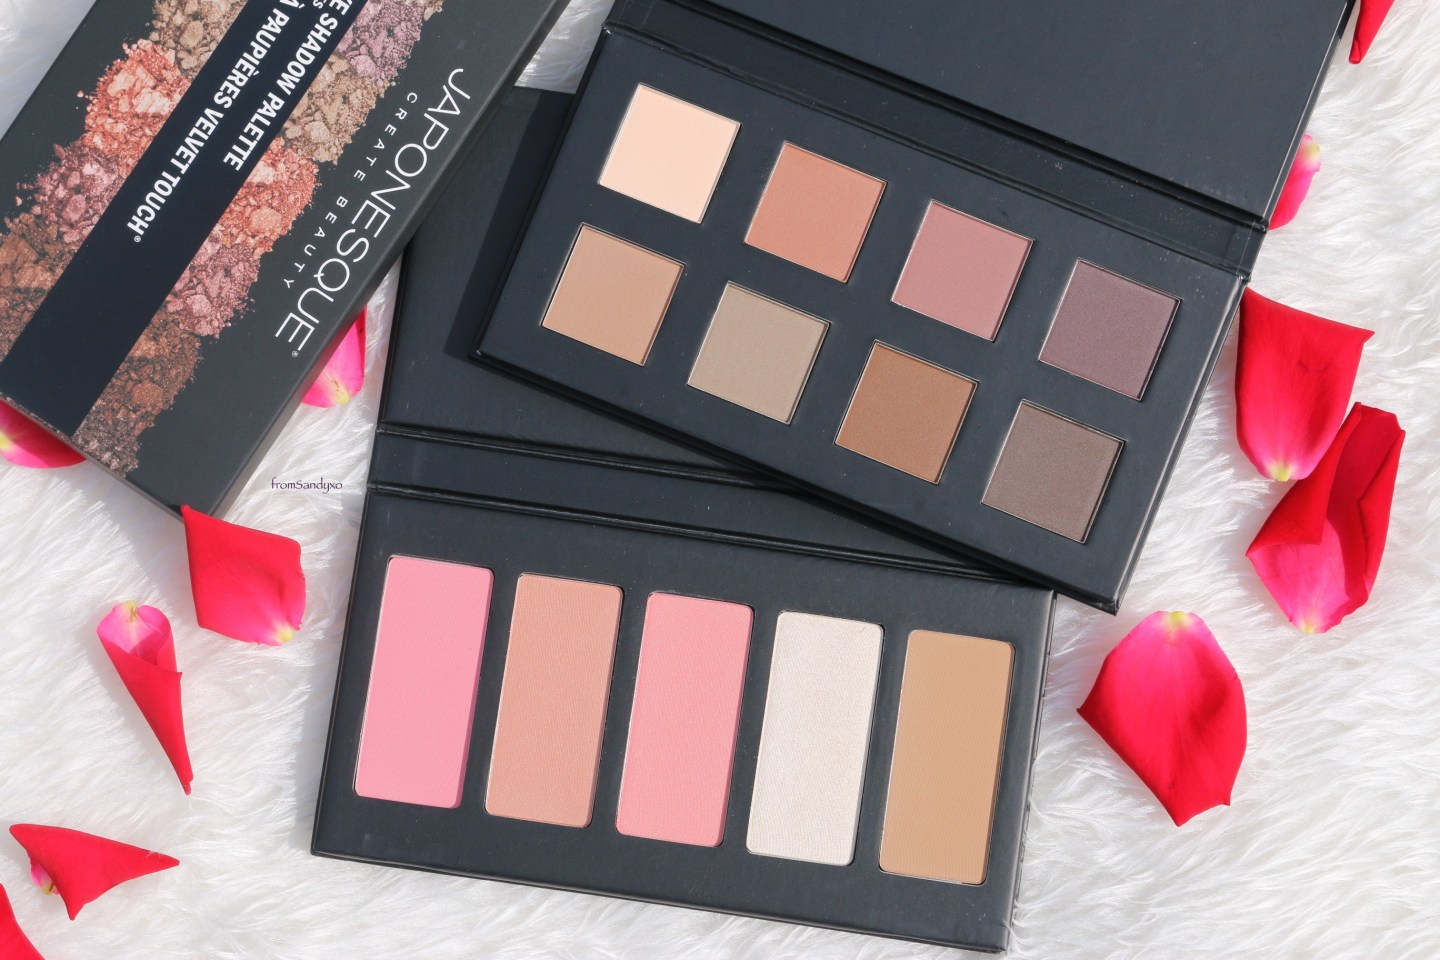 Nude Eyeshadow Shades from Japonesque in Velvet Touch ~ Luxury Beauty Product Review